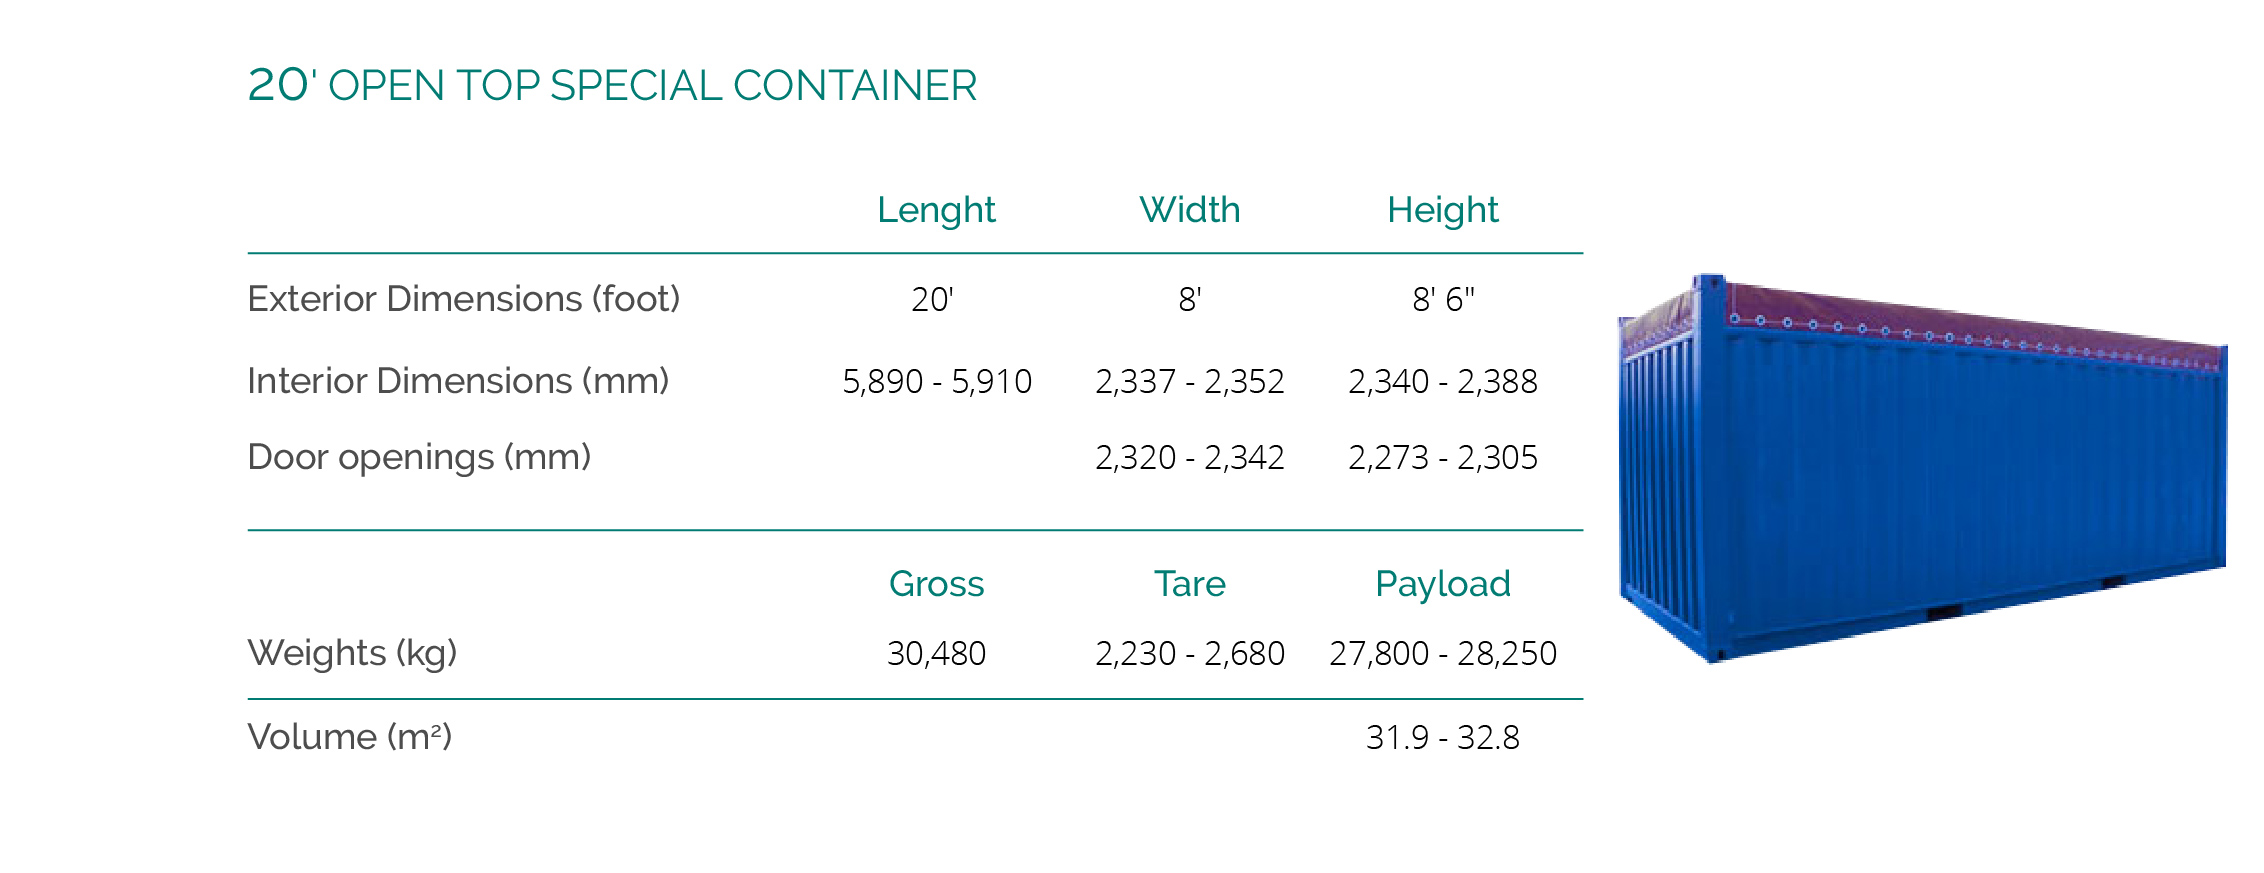 20' OPEN TOP SPECIAL CONTAINER